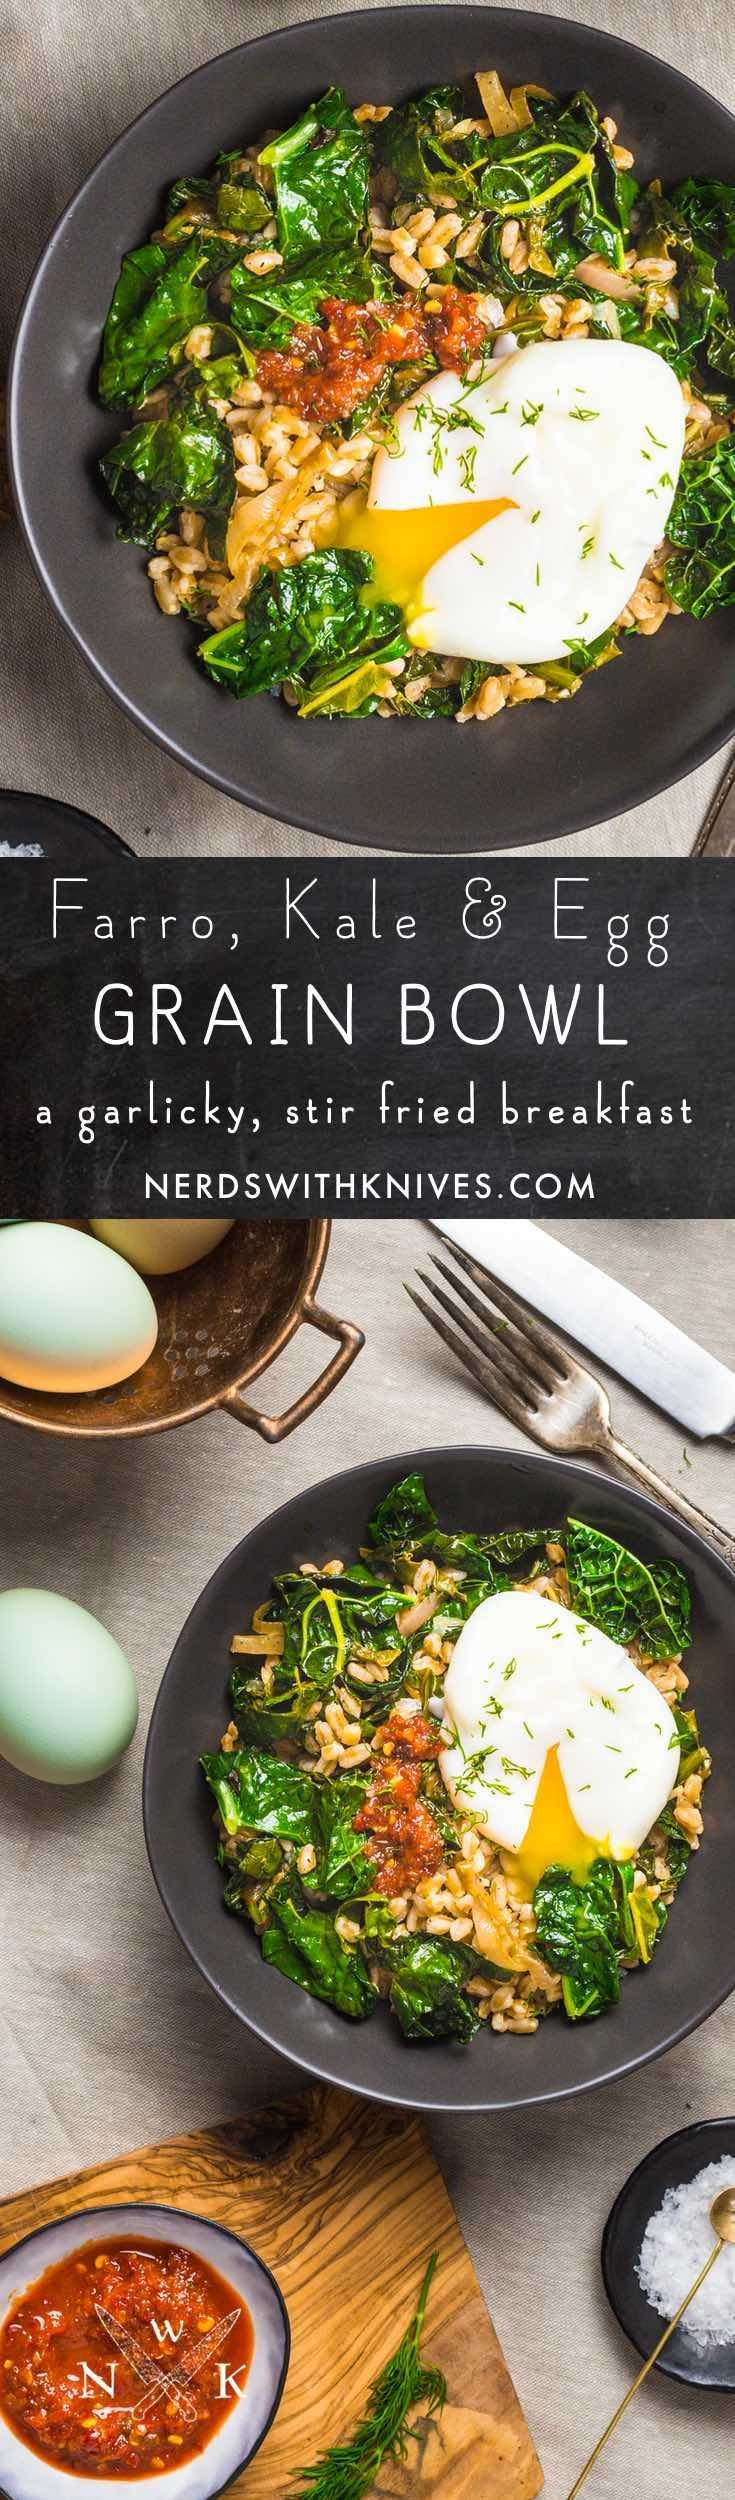 Tender stir fried farro, garlicky sautéed kale, and a perfectly poached egg. This simple, healthy grain bowl is packed with everything you need to start your day off right.